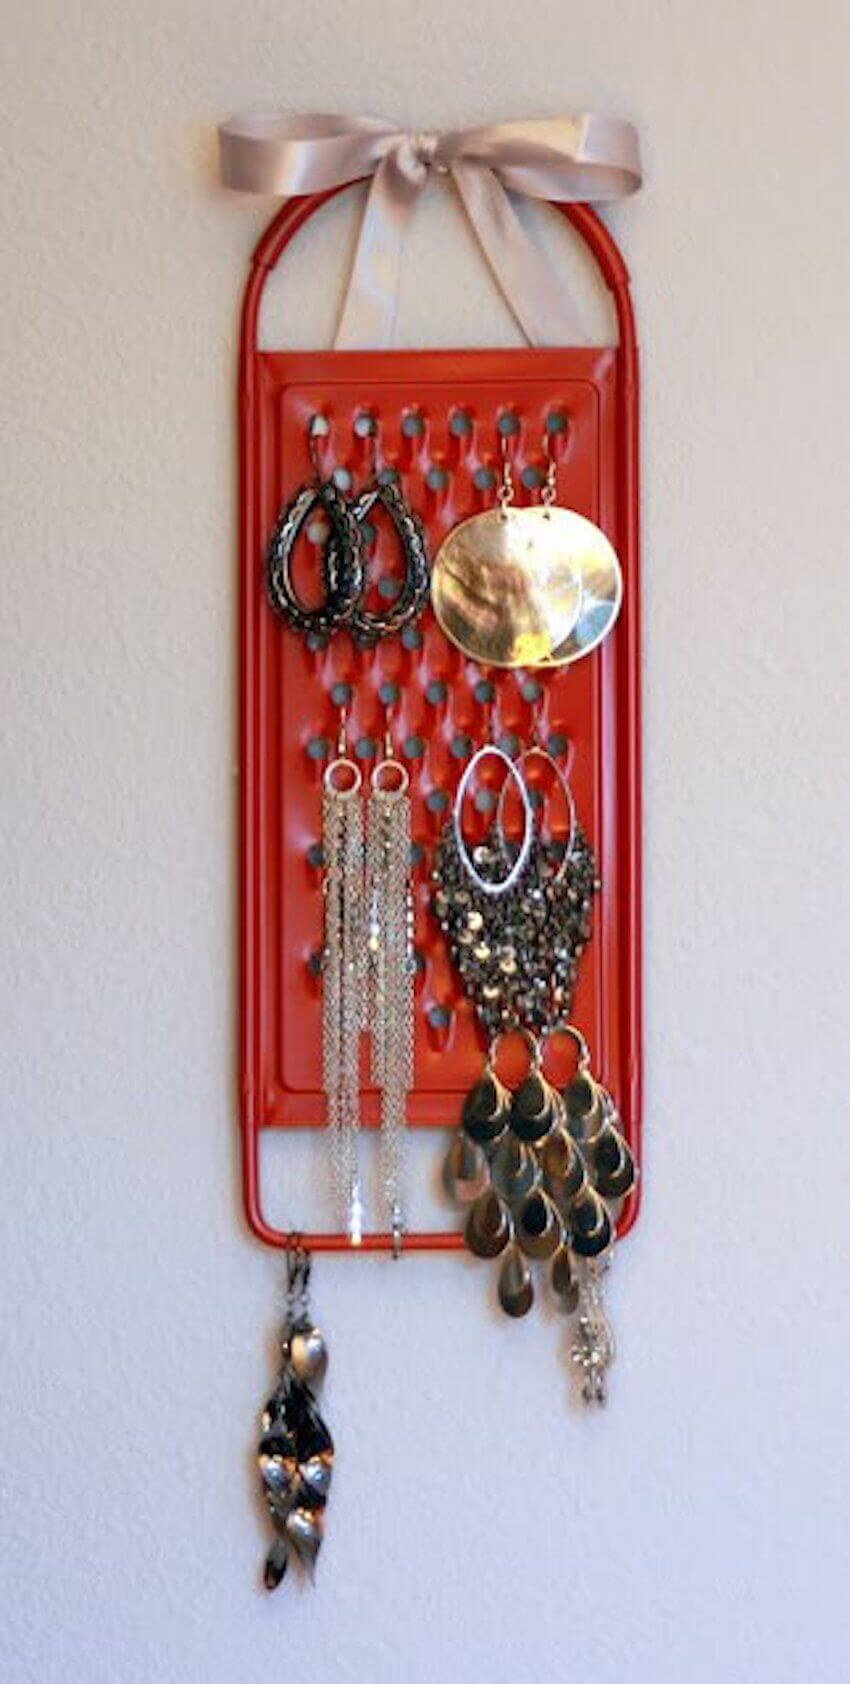 Another DIY: Looking for a way to repurpose that old cheese grater? Use it to organize your jewelry!